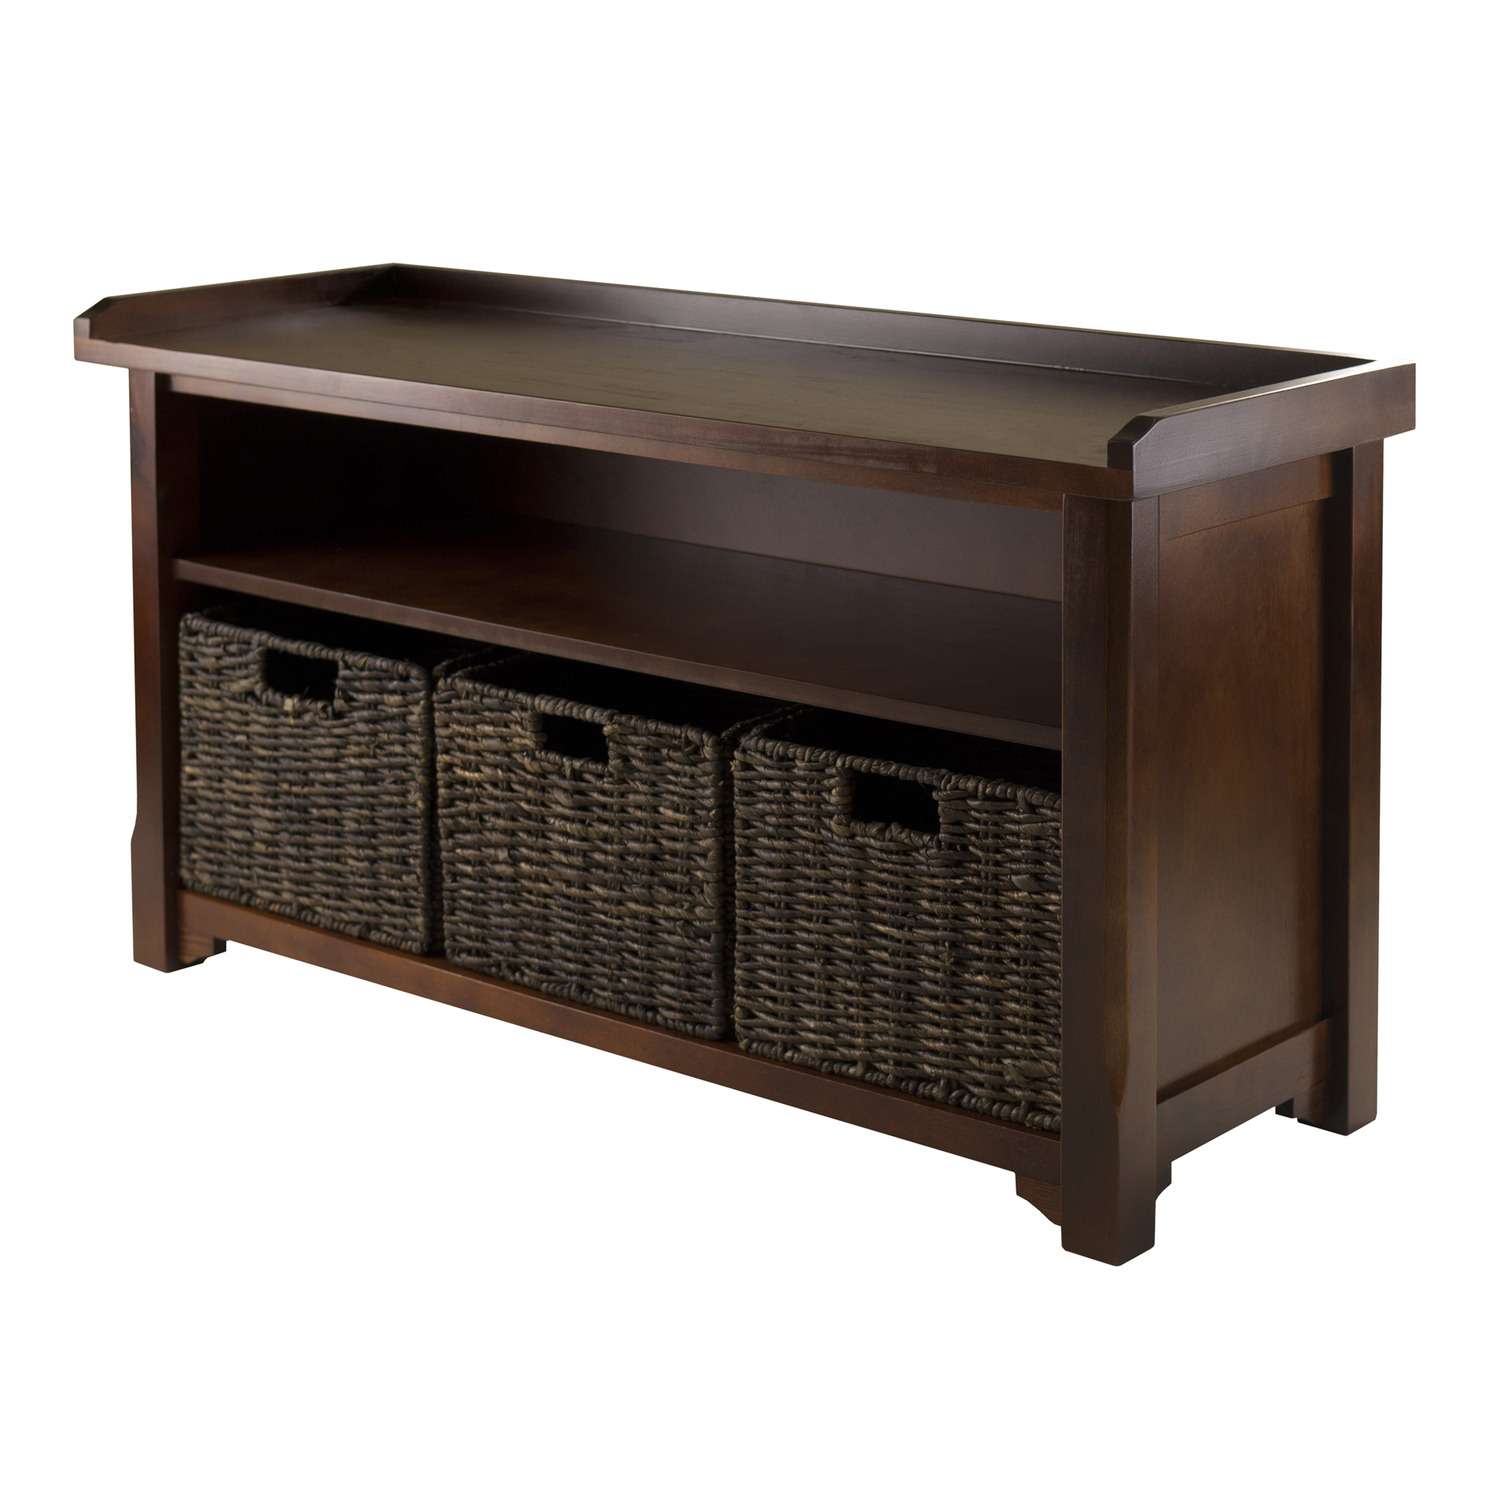 Winsome Wood Granville Storage Bench By Oj Commerce 94338